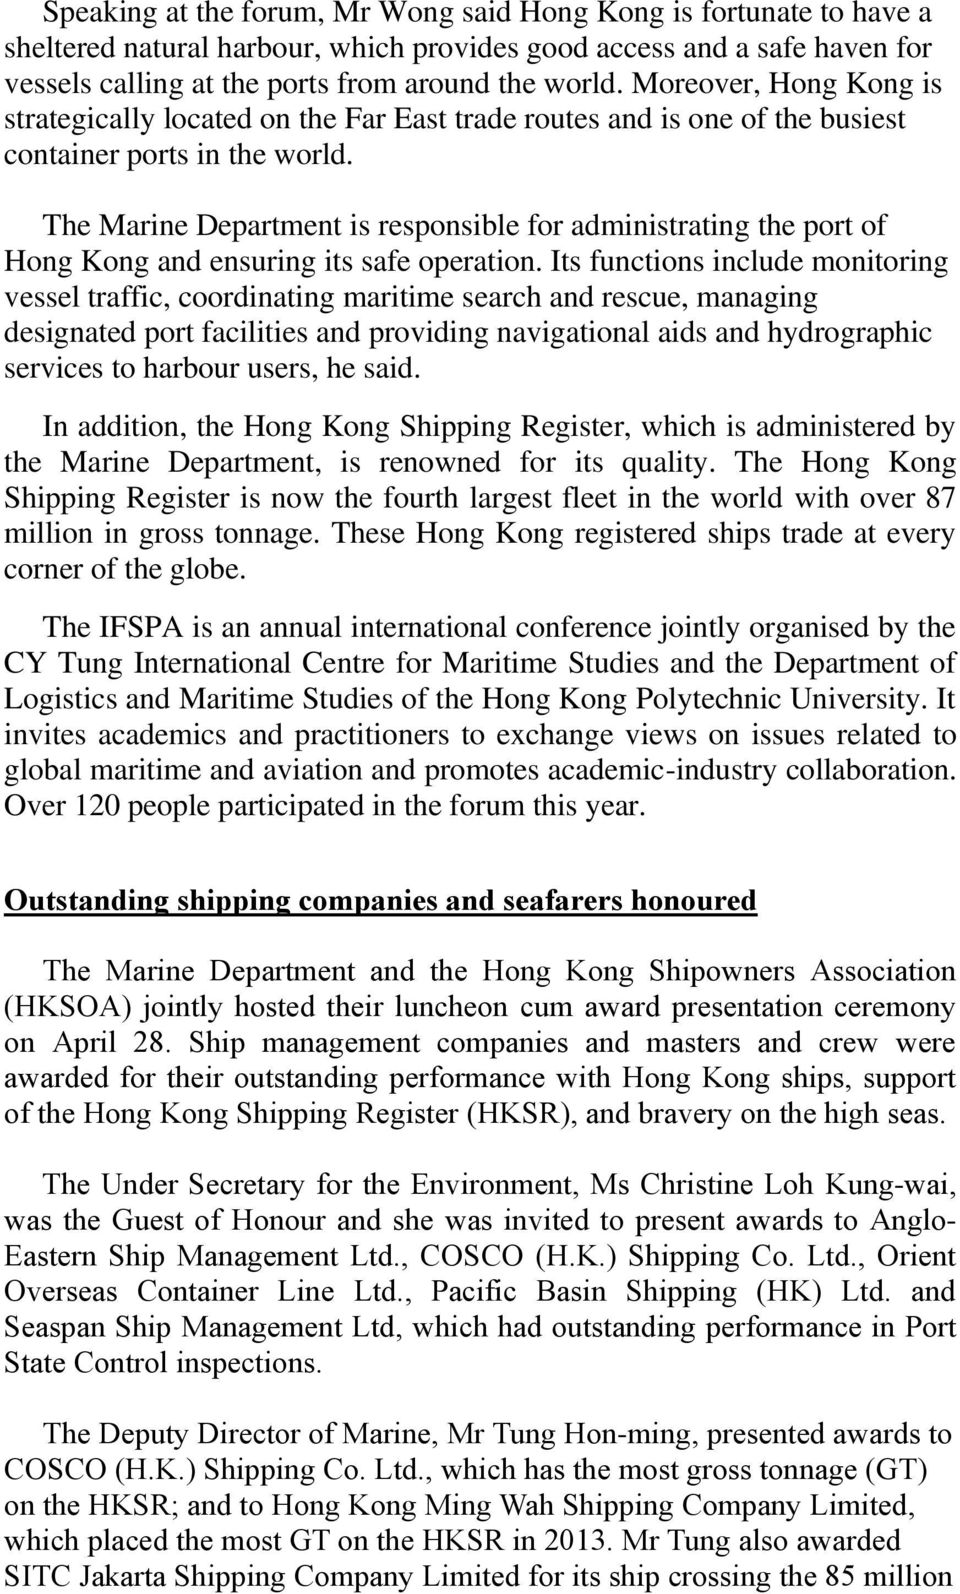 The Marine Department is responsible for administrating the port of Hong Kong and ensuring its safe operation.